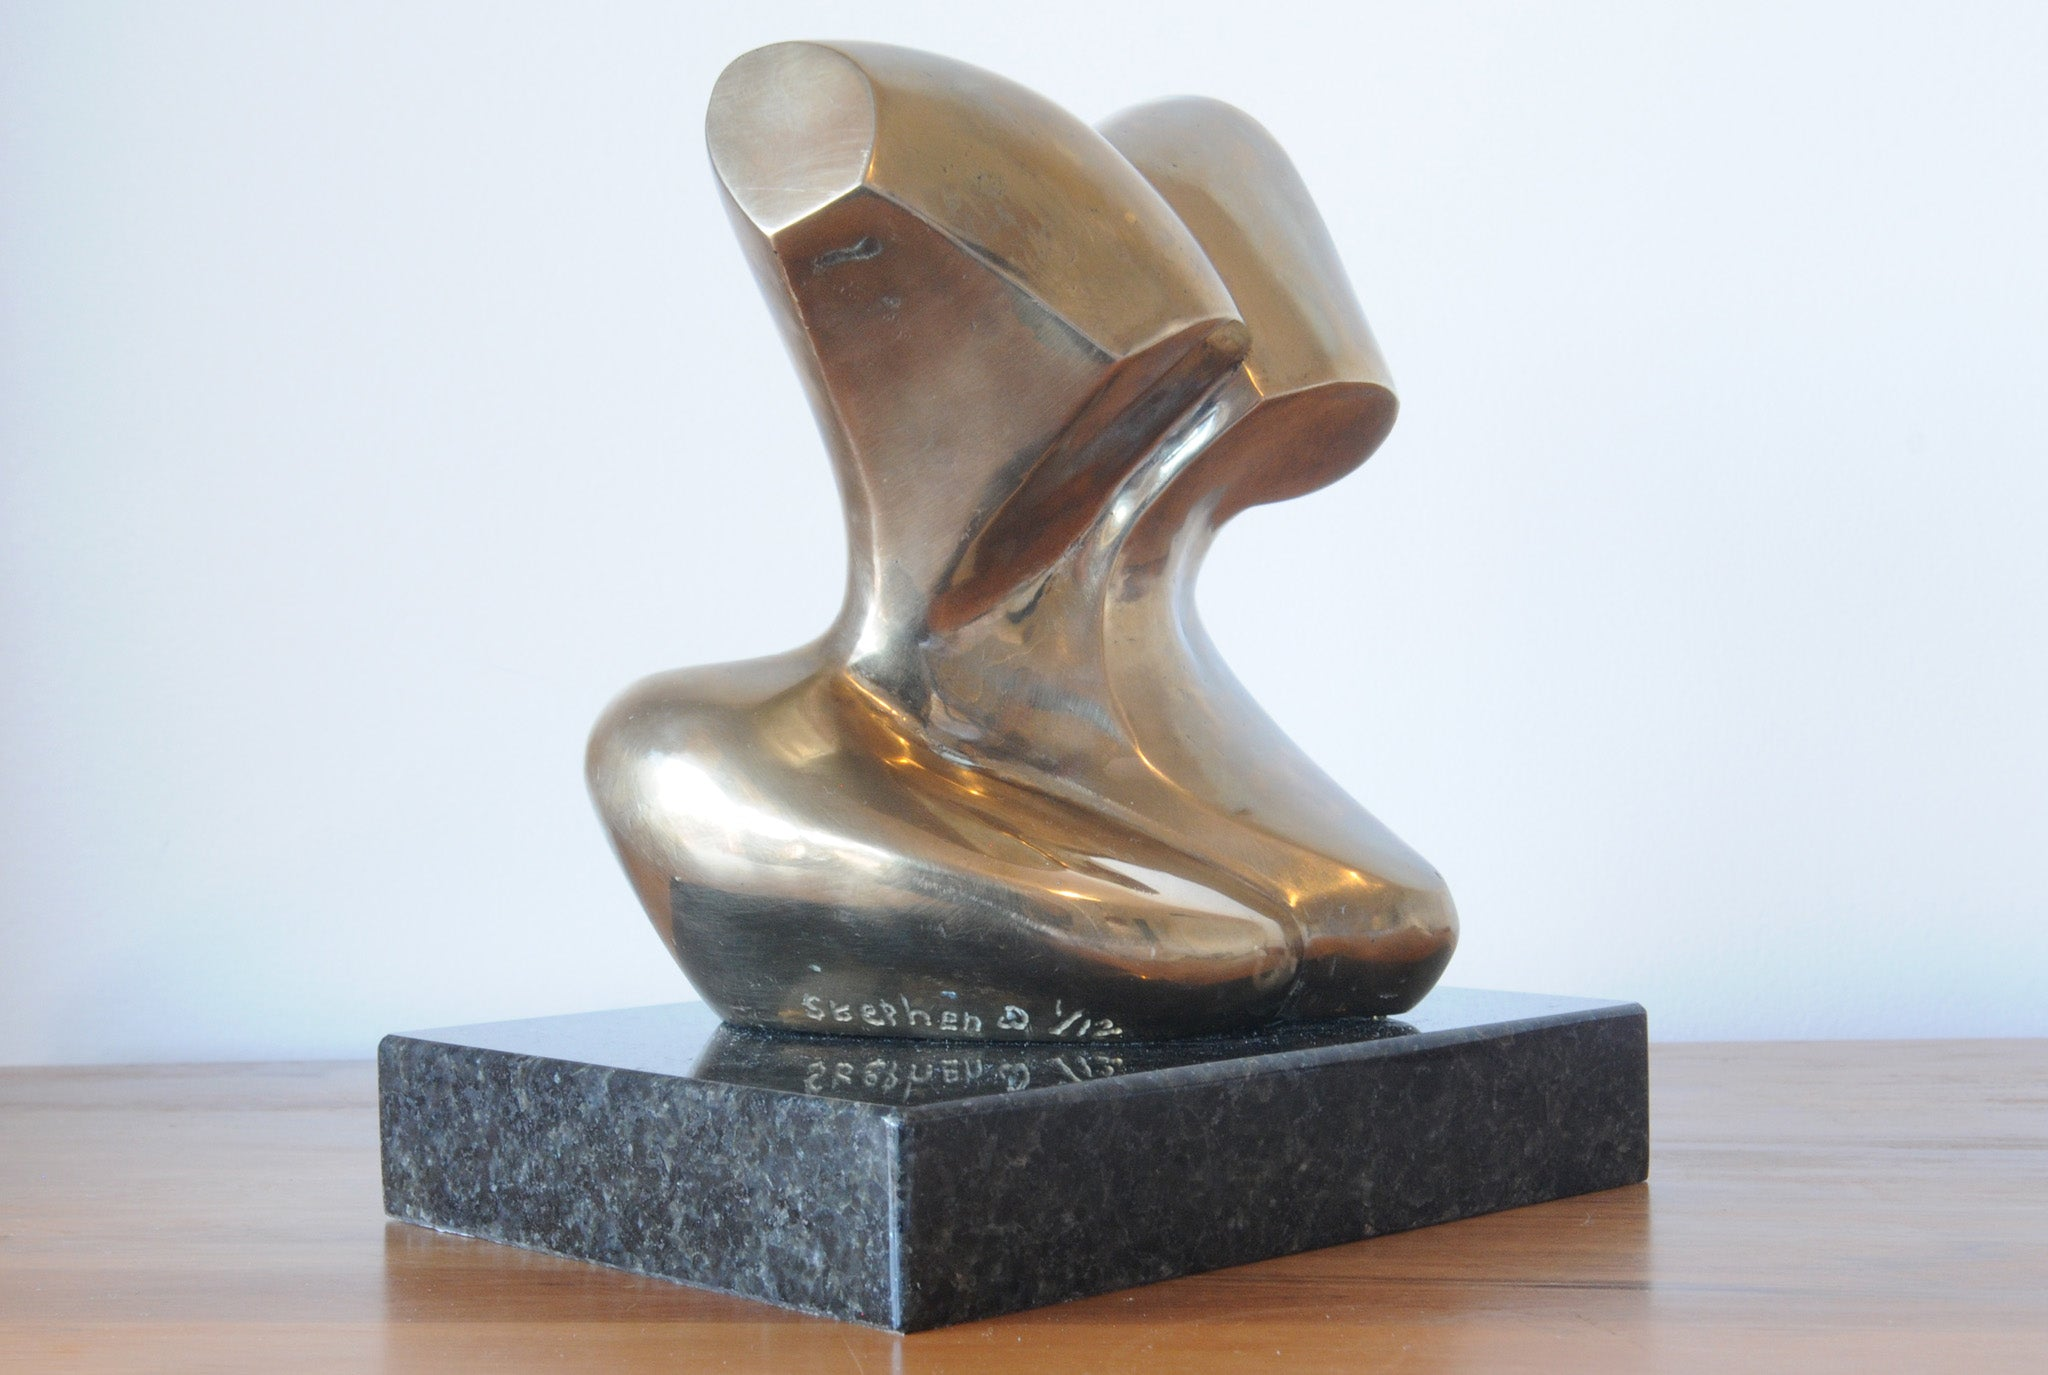 Abstract bronze figure sculpture by Stephen Williams